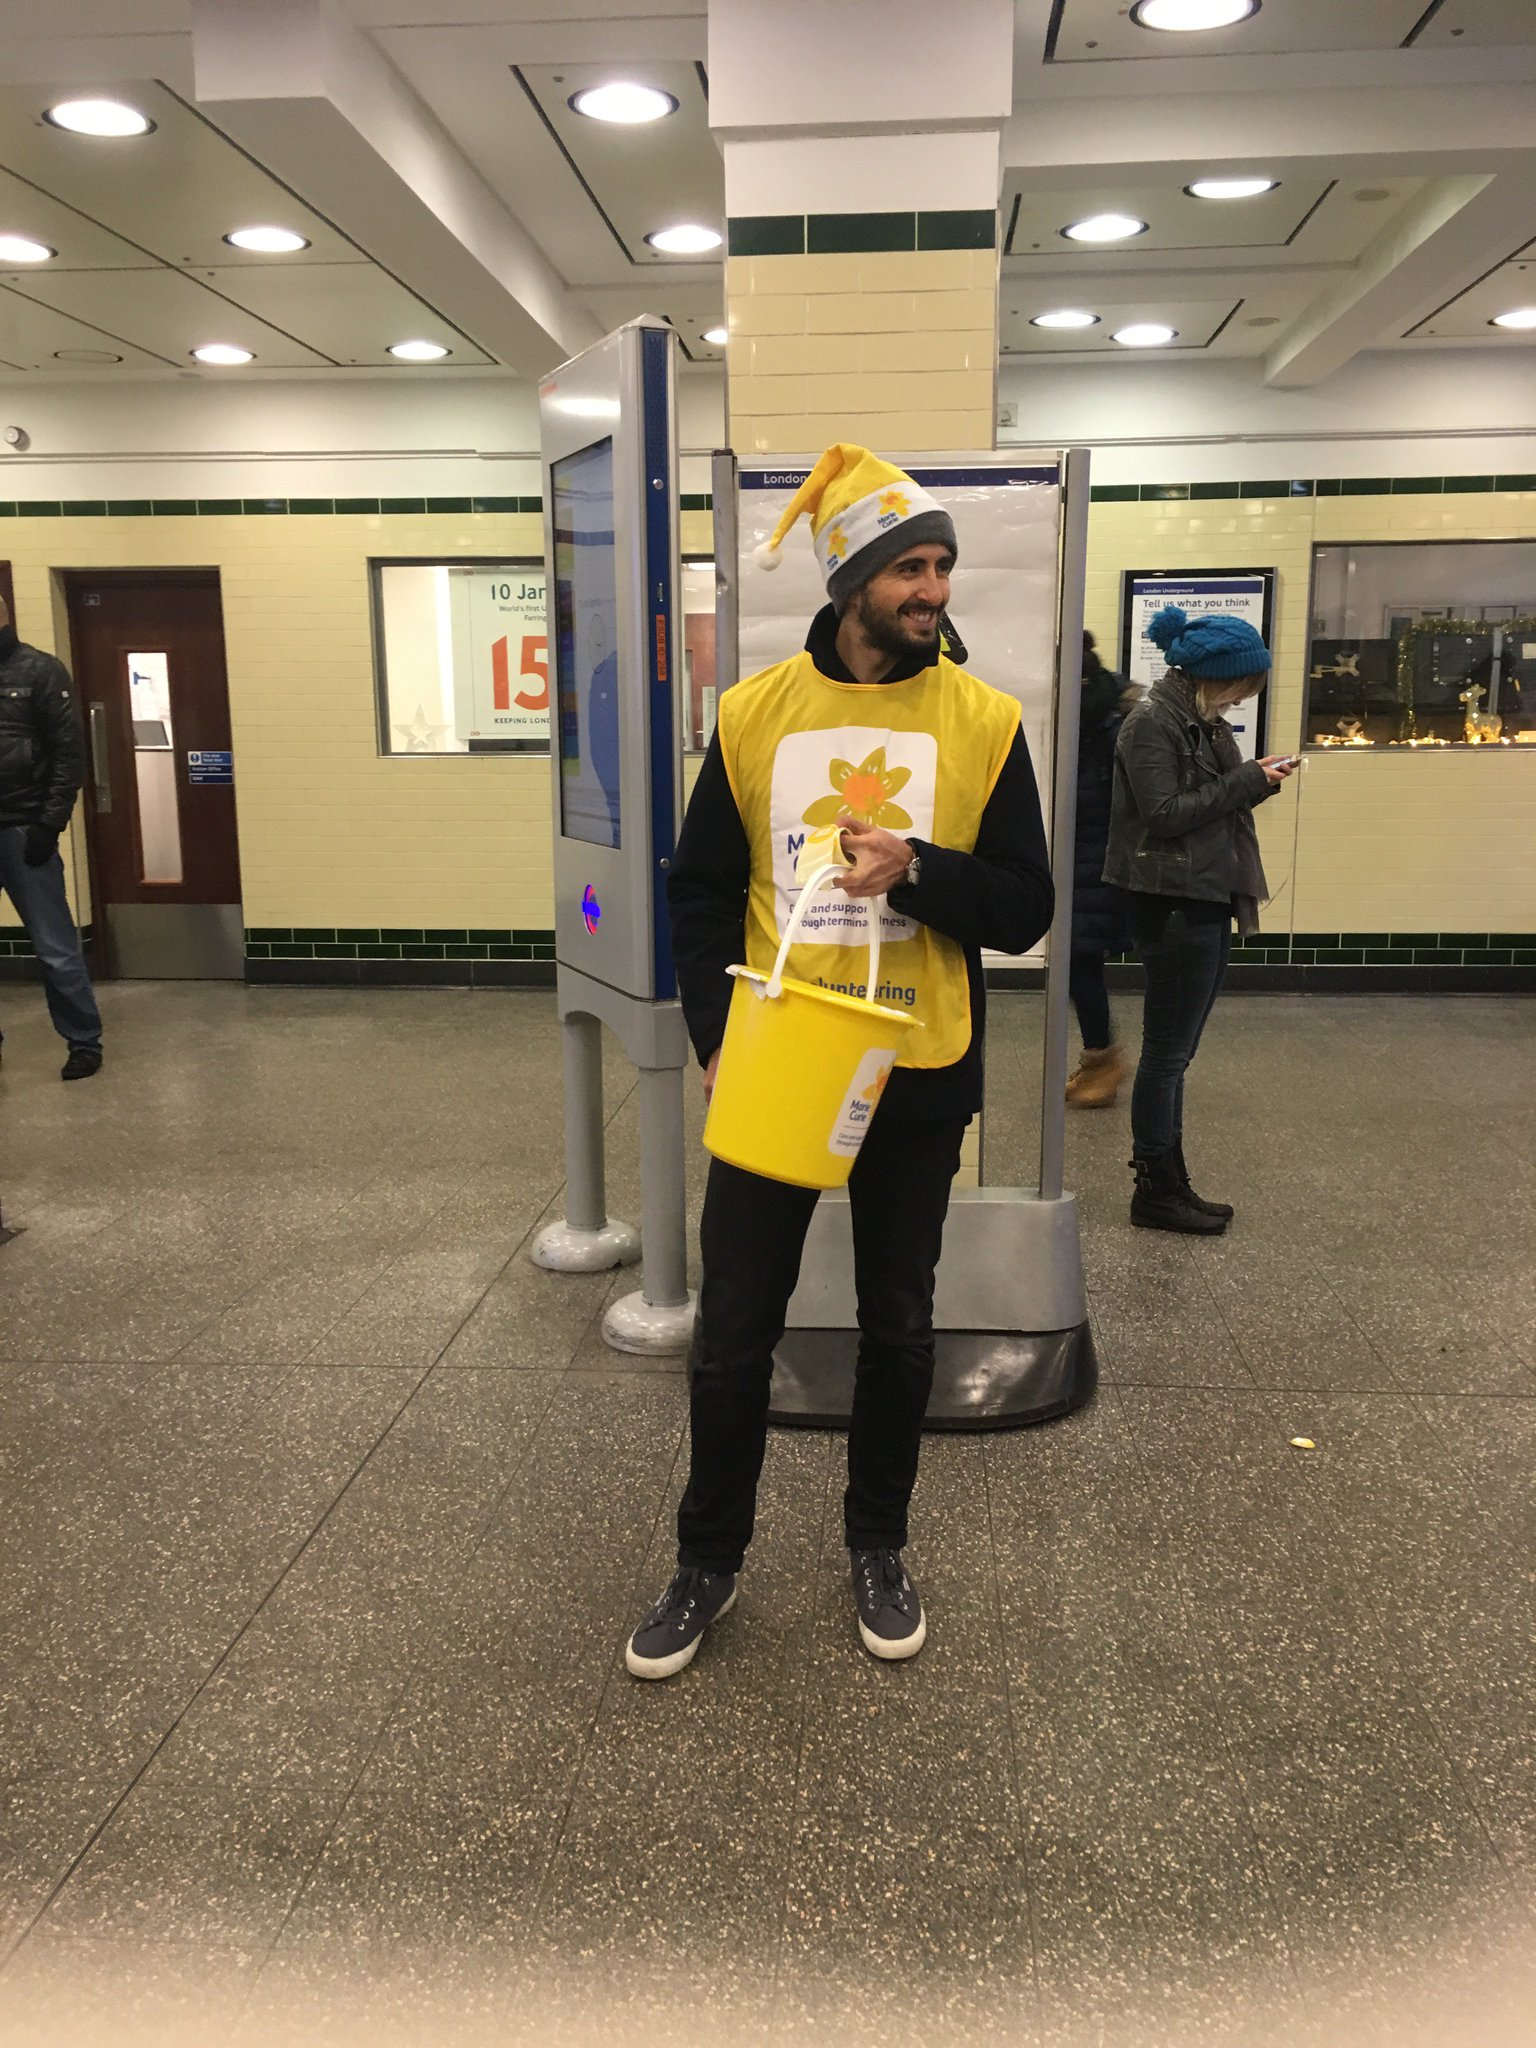 RT @UMLondon: #TBT to #Christmas collecting to @mariecurieuk last week. Over £1,800 raised in one morning! https://t.co/z1IrVTV39f